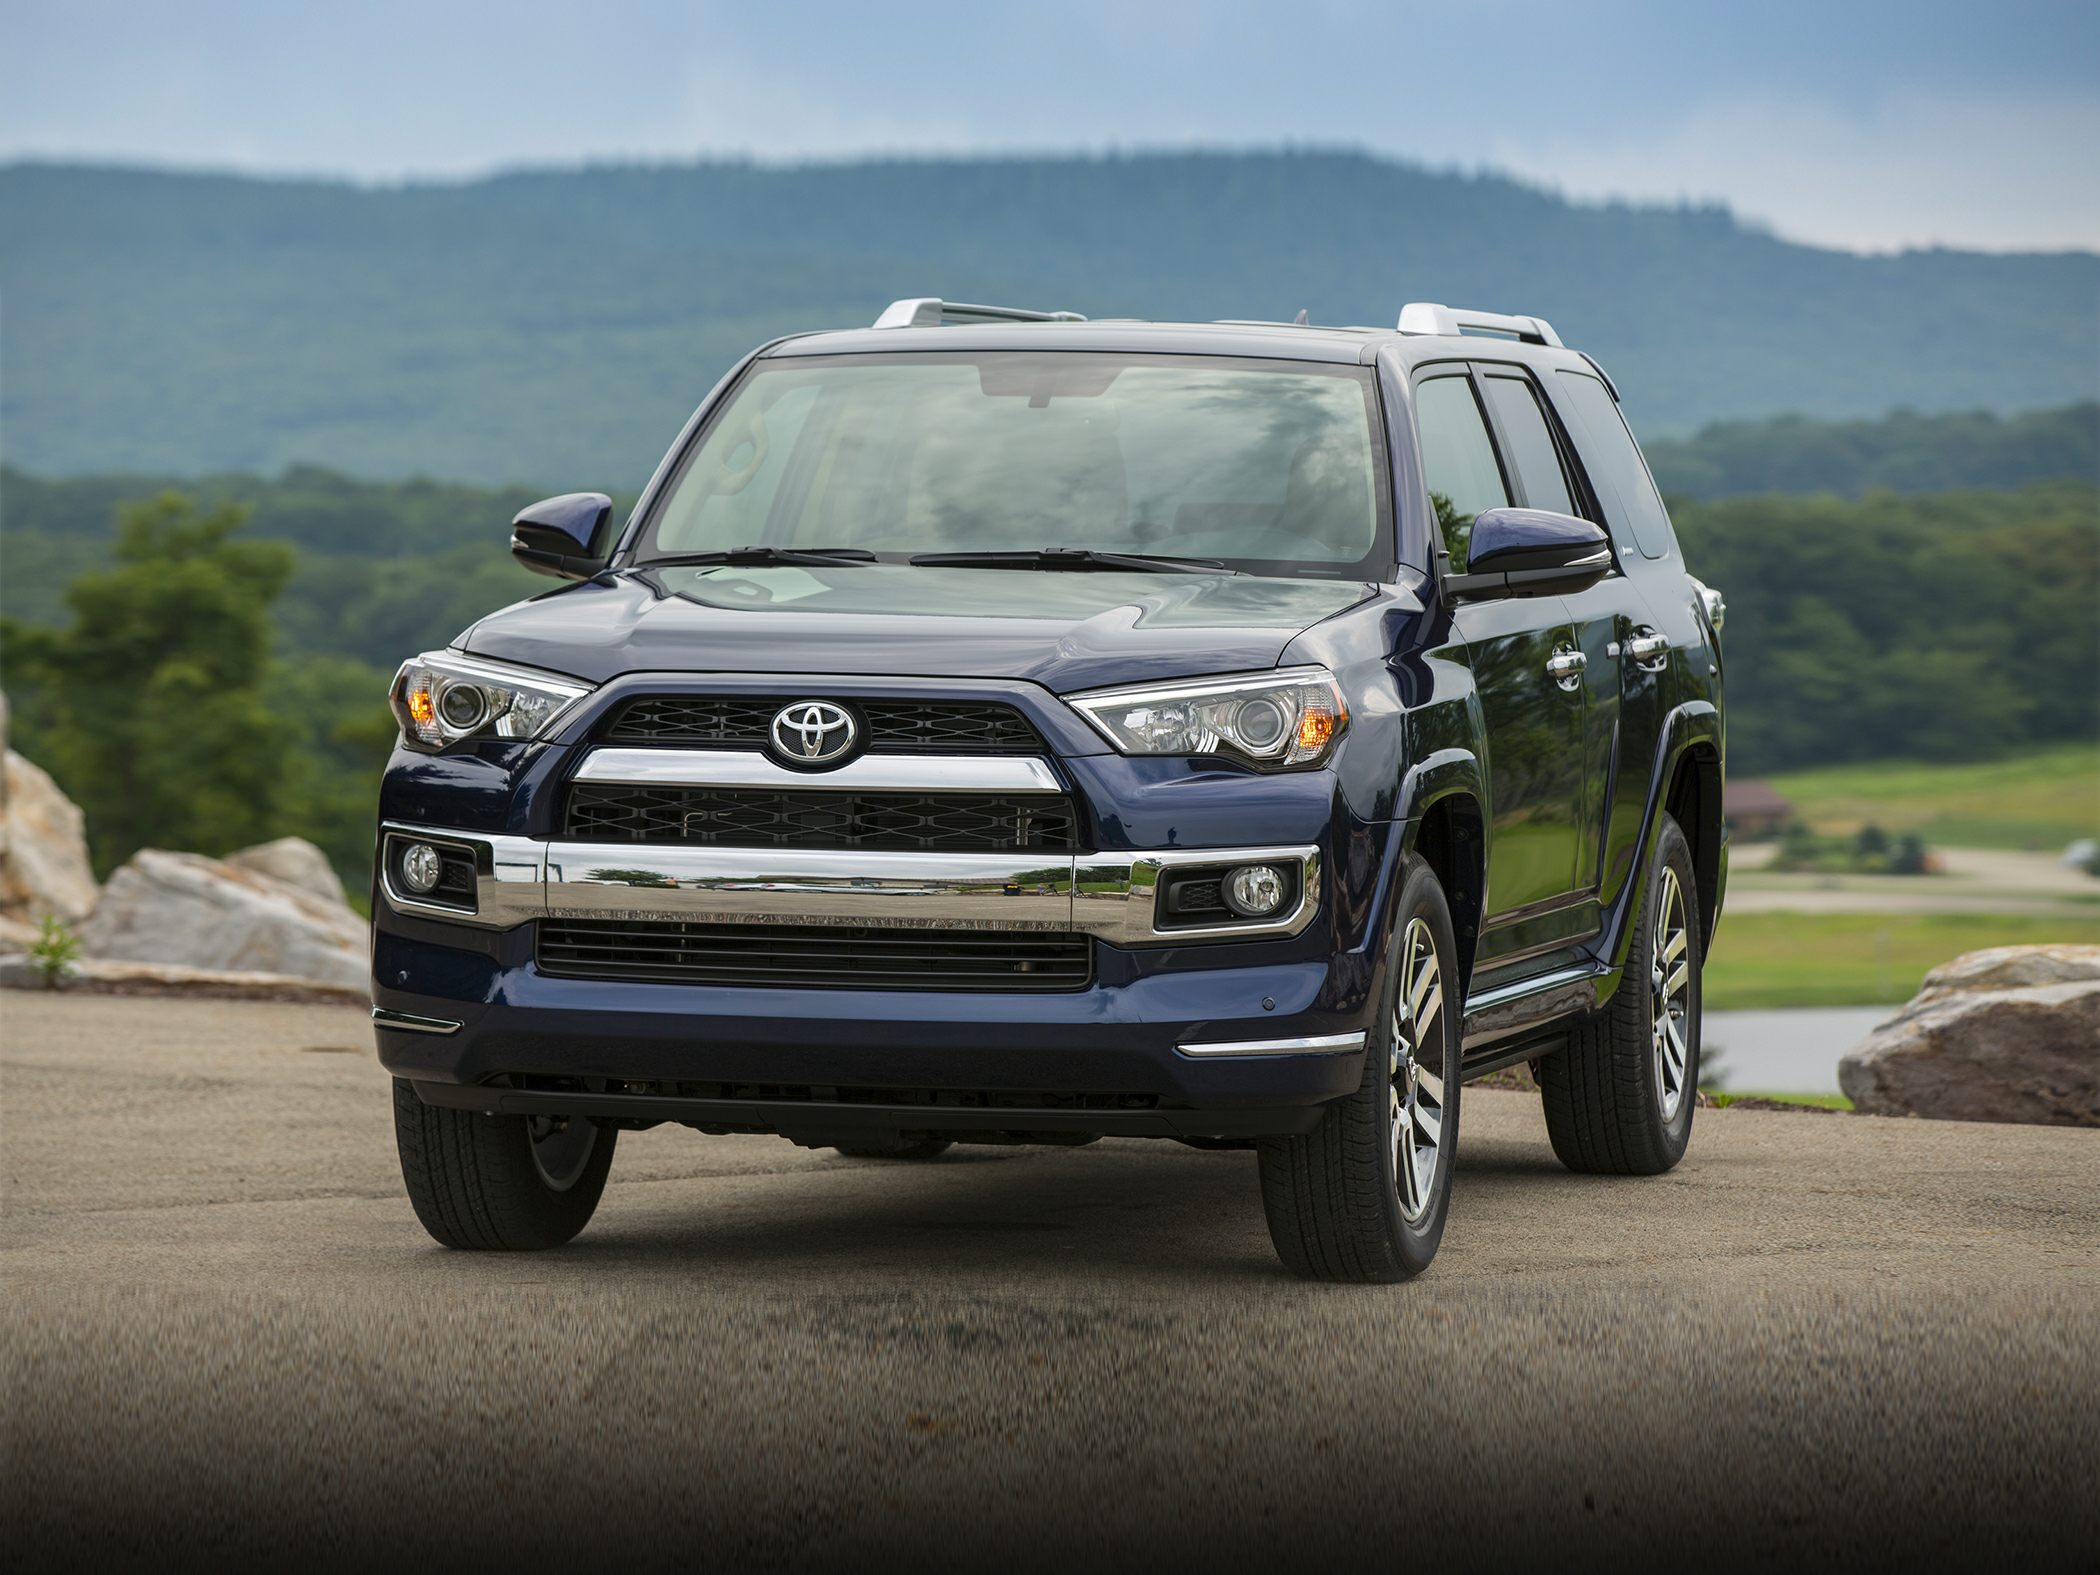 2017 toyota 4runner deals prices incentives leases overview carsdirect. Black Bedroom Furniture Sets. Home Design Ideas